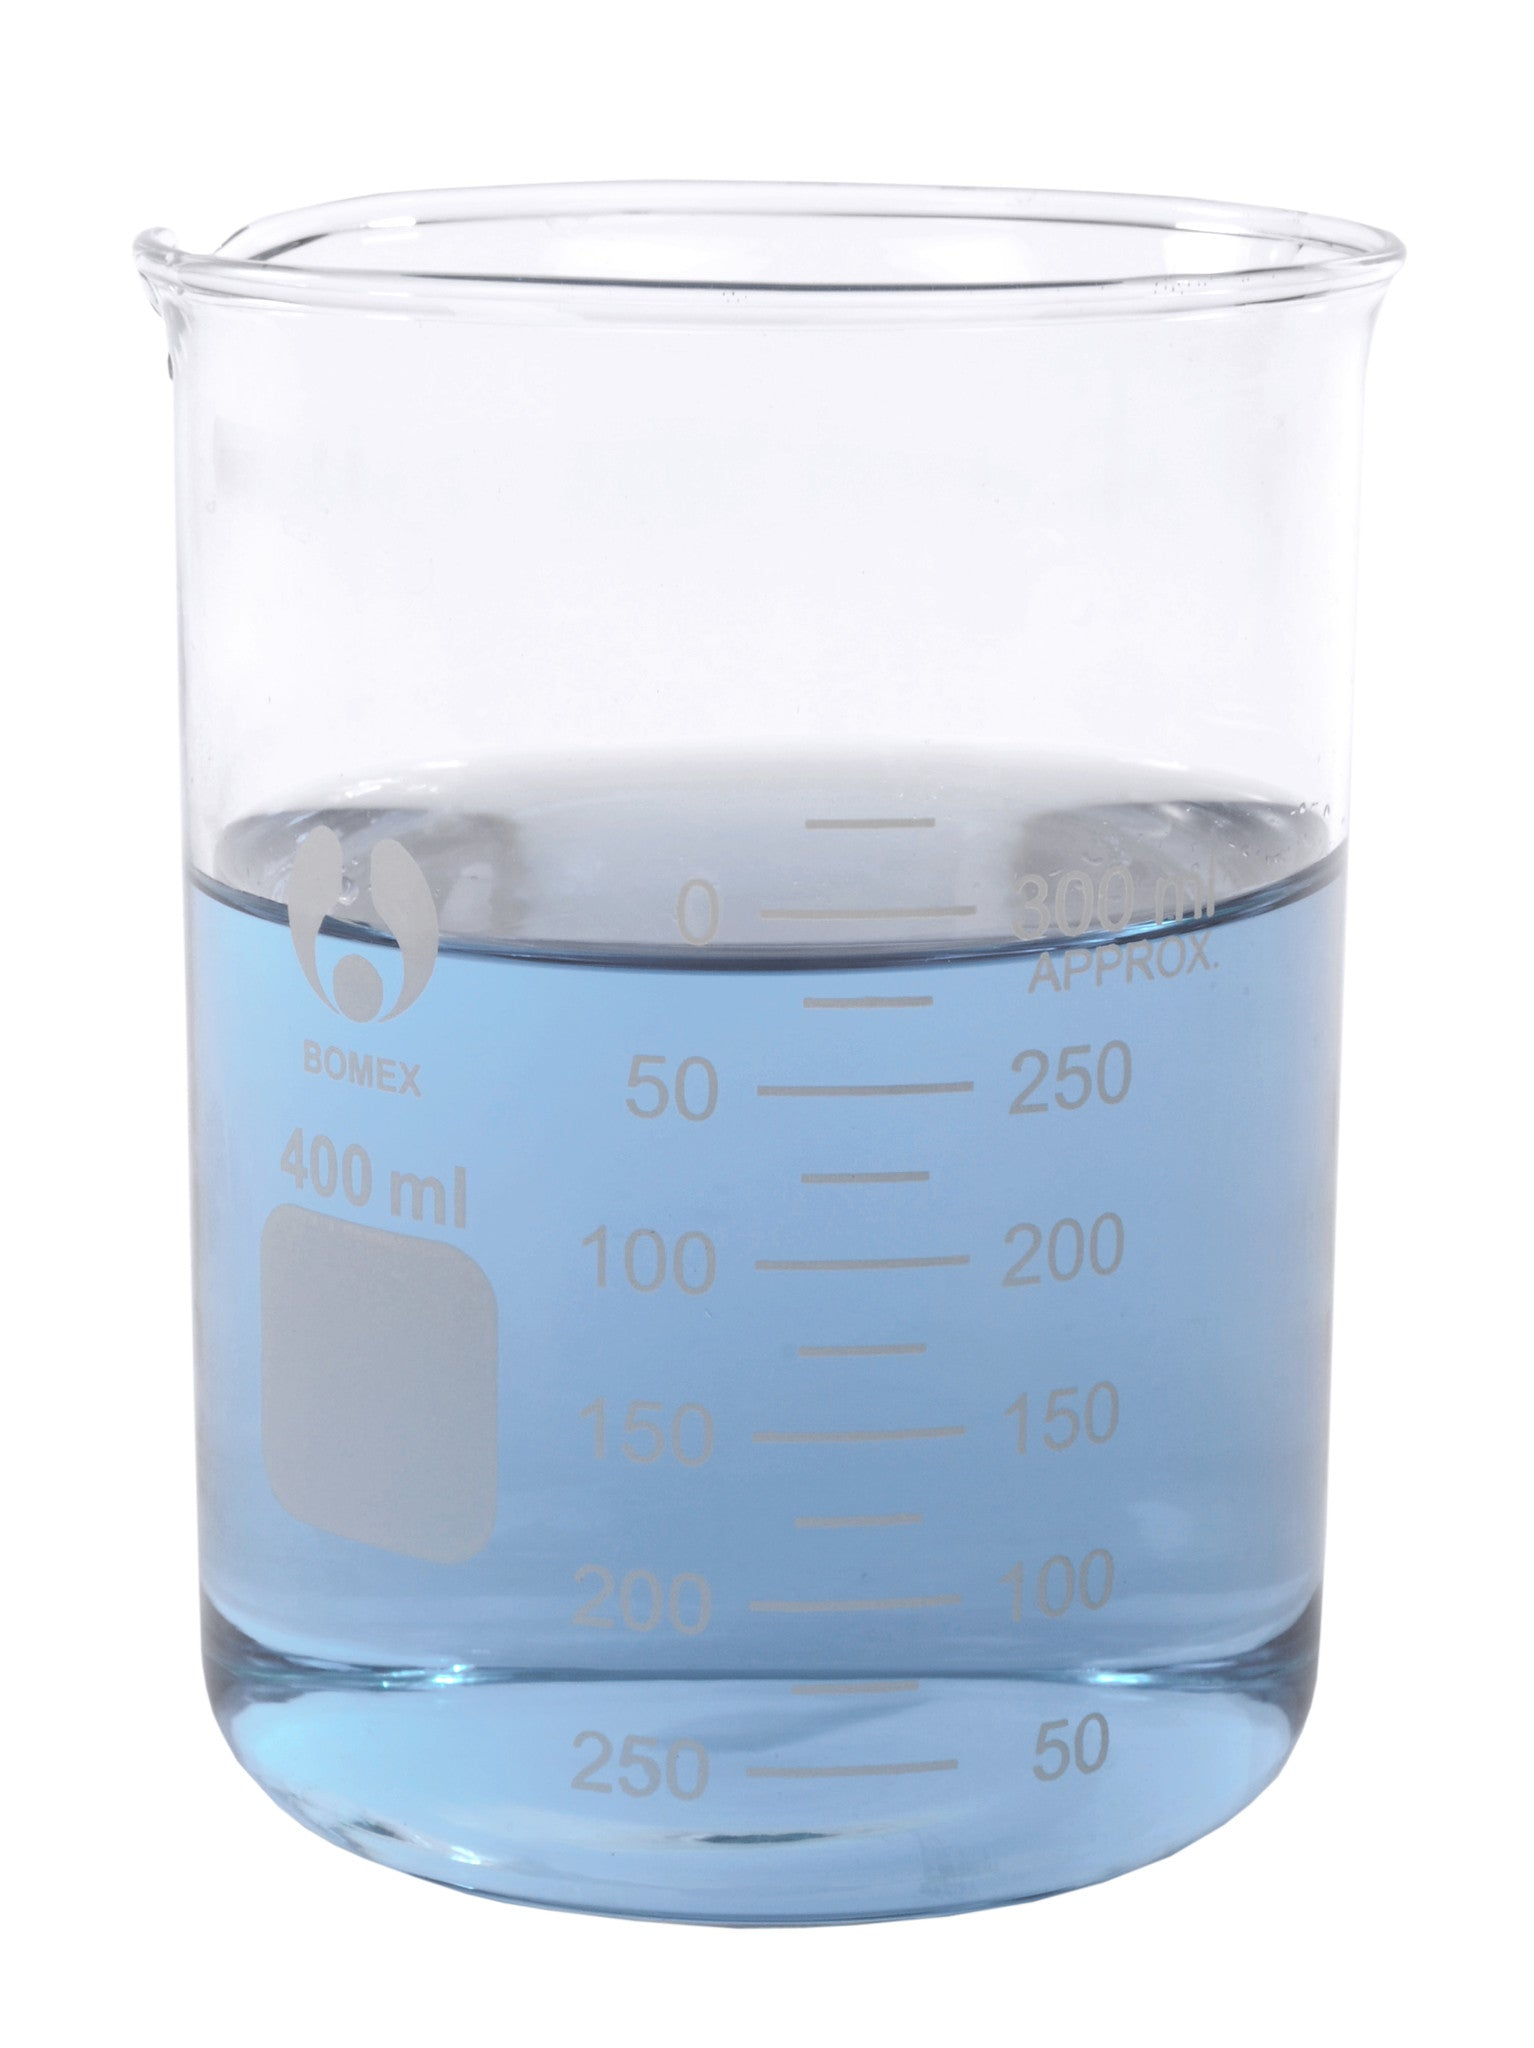 Bomex Griffin Low Form Beaker, Graduated ~ 400mL - The Science Shop